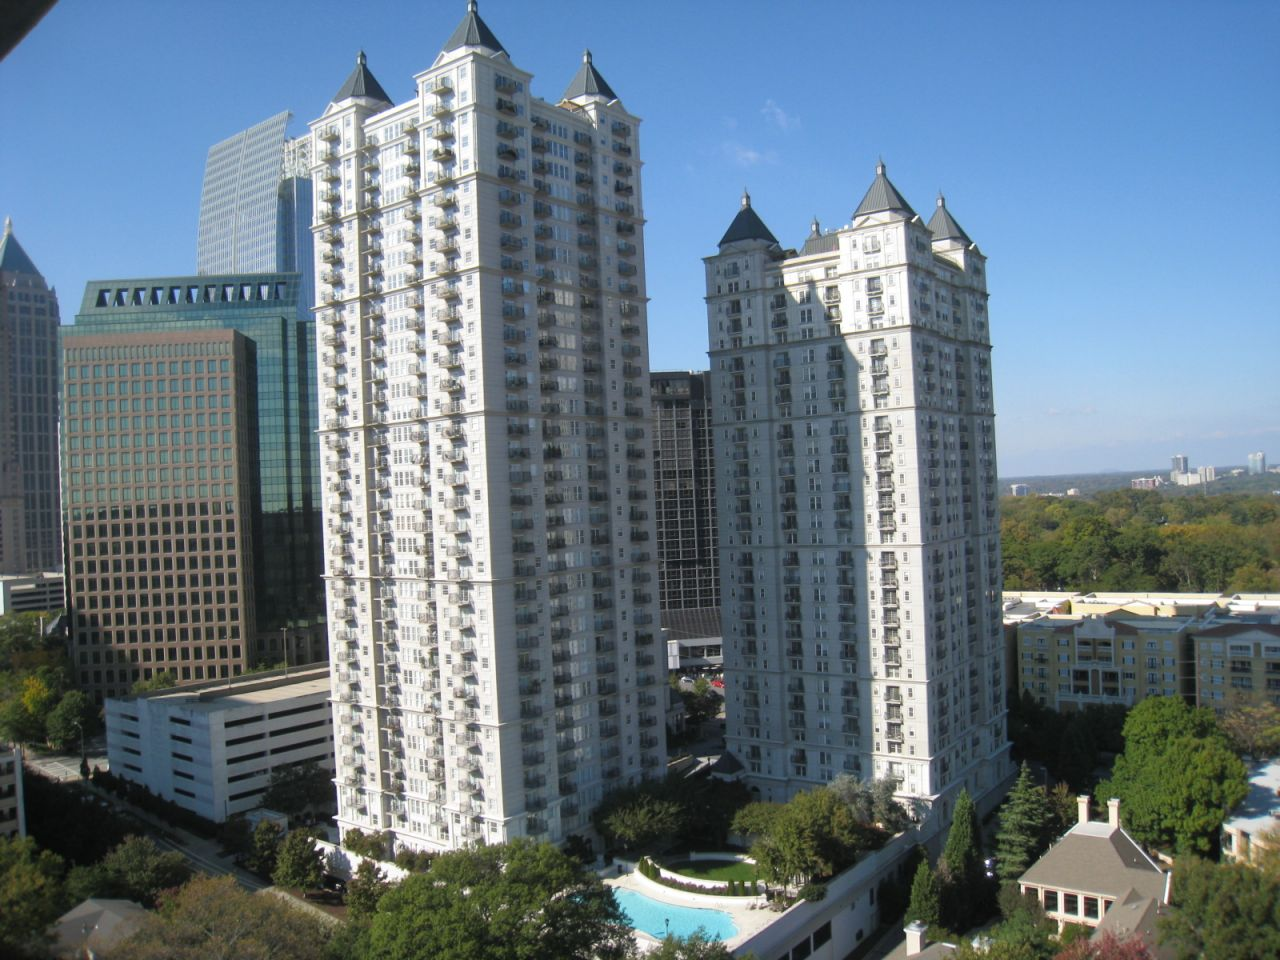 The Mayfair buildings in Atlanta from a distance